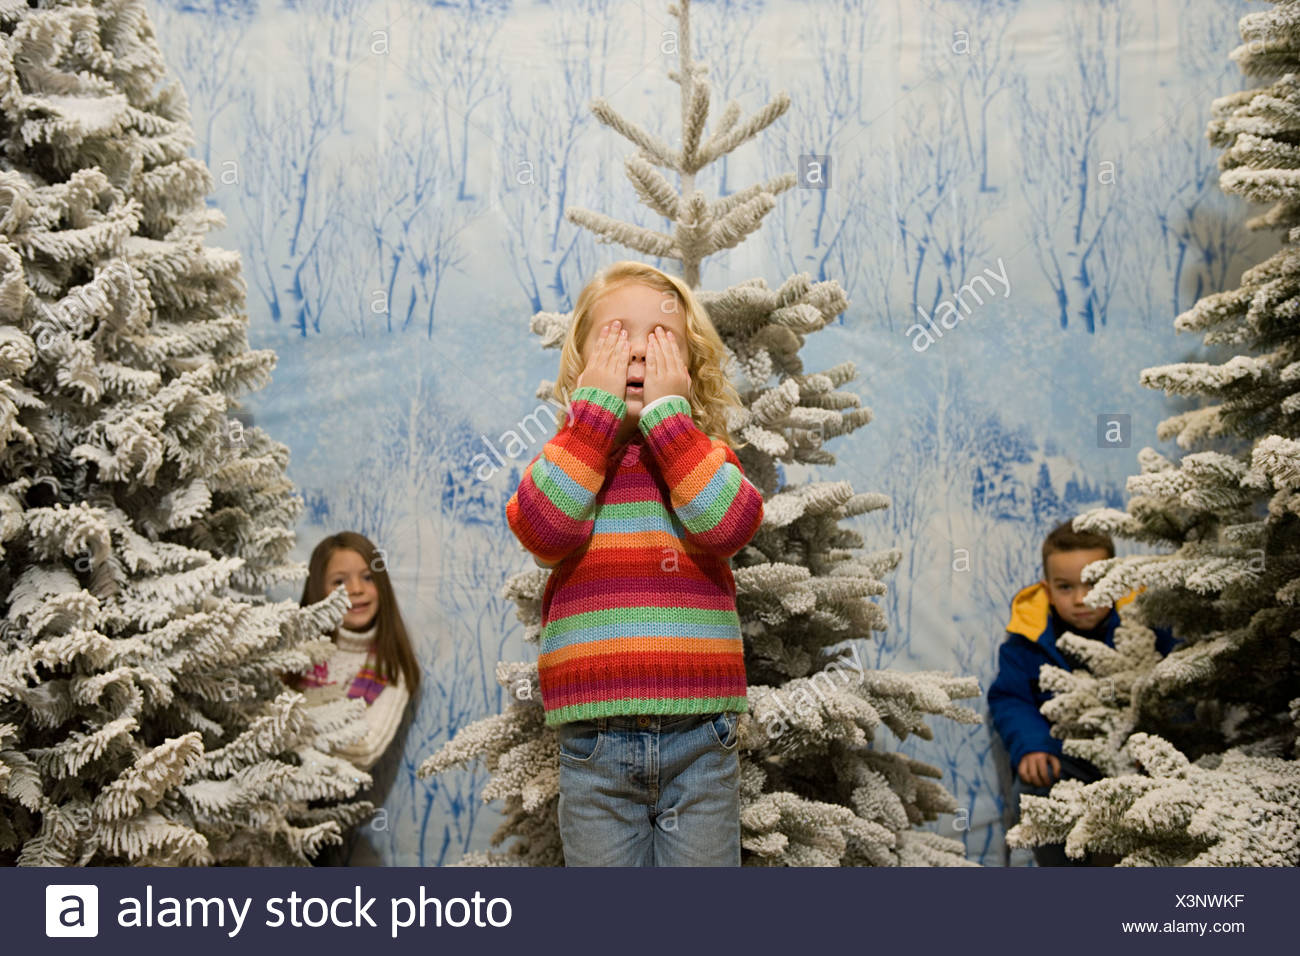 Children playing hide and seek - Stock Image